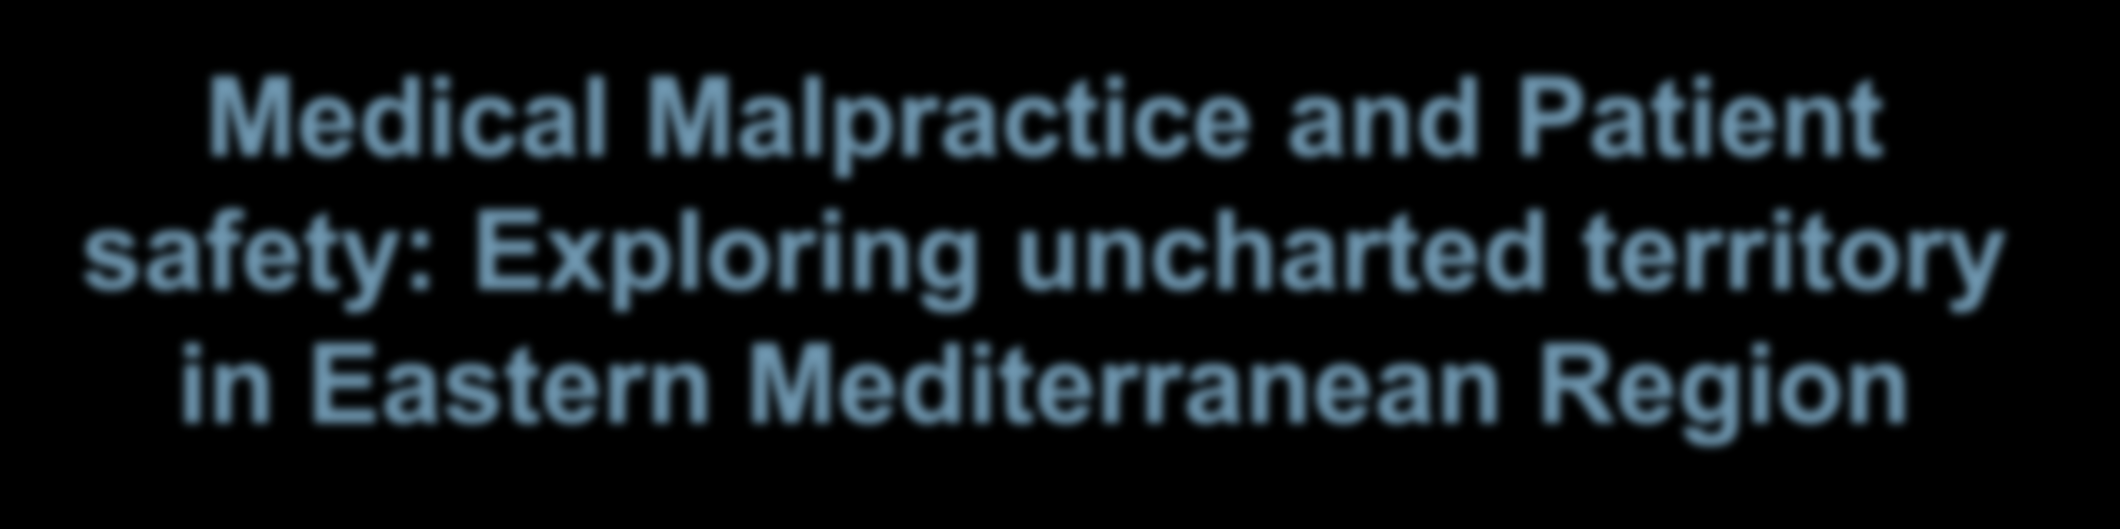 Medical Malpractice and Patient safety: Exploring uncharted territory in Eastern Mediterranean Region Thalia Arawi,